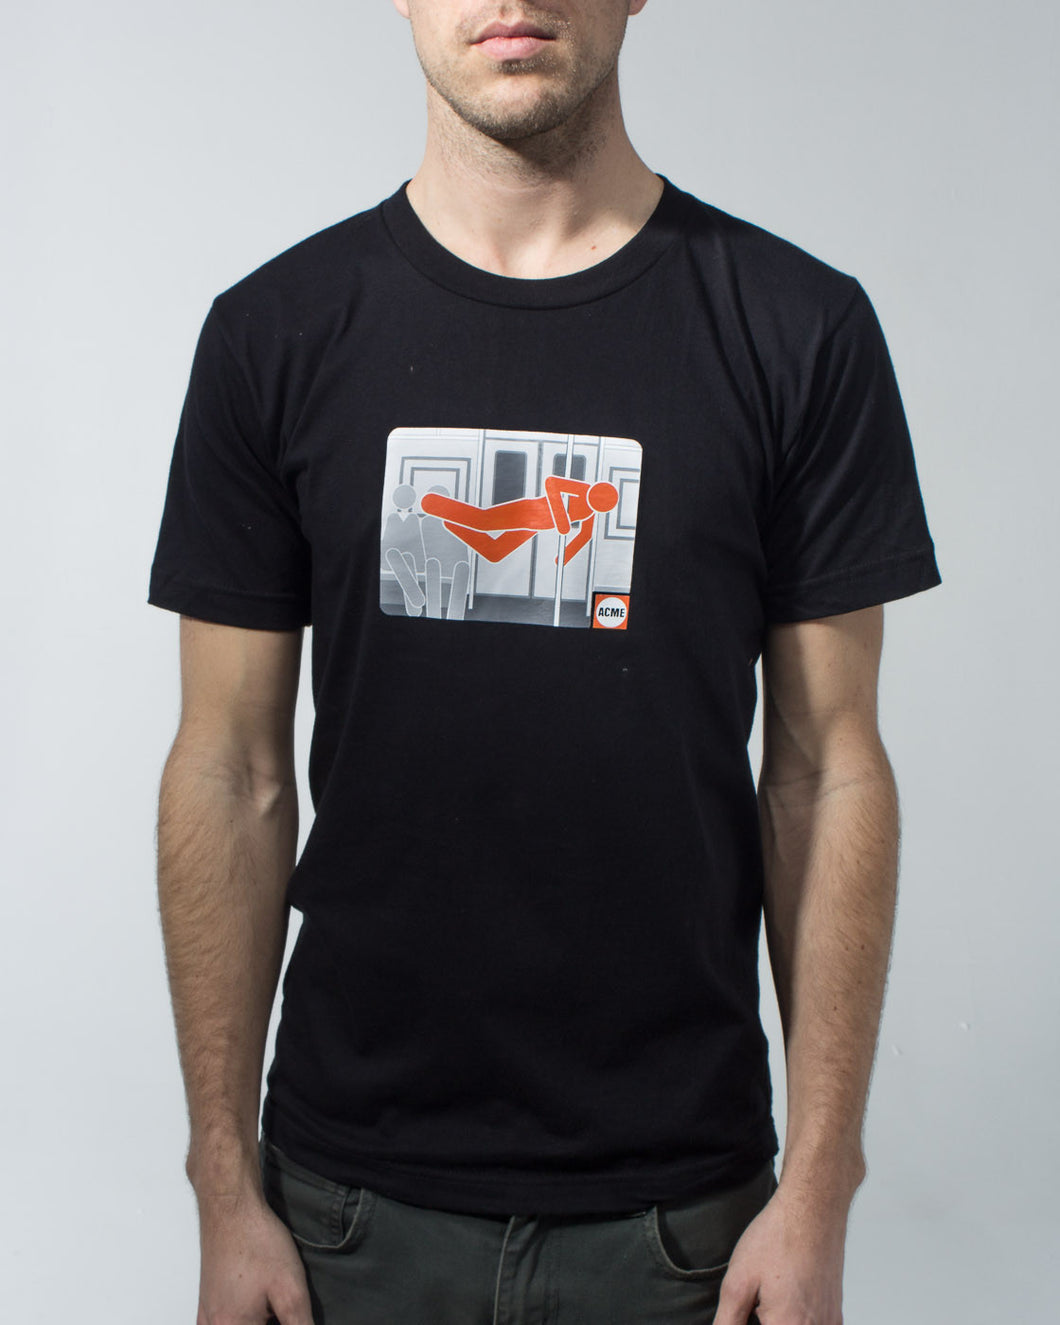 ACME Showtime T-shirt